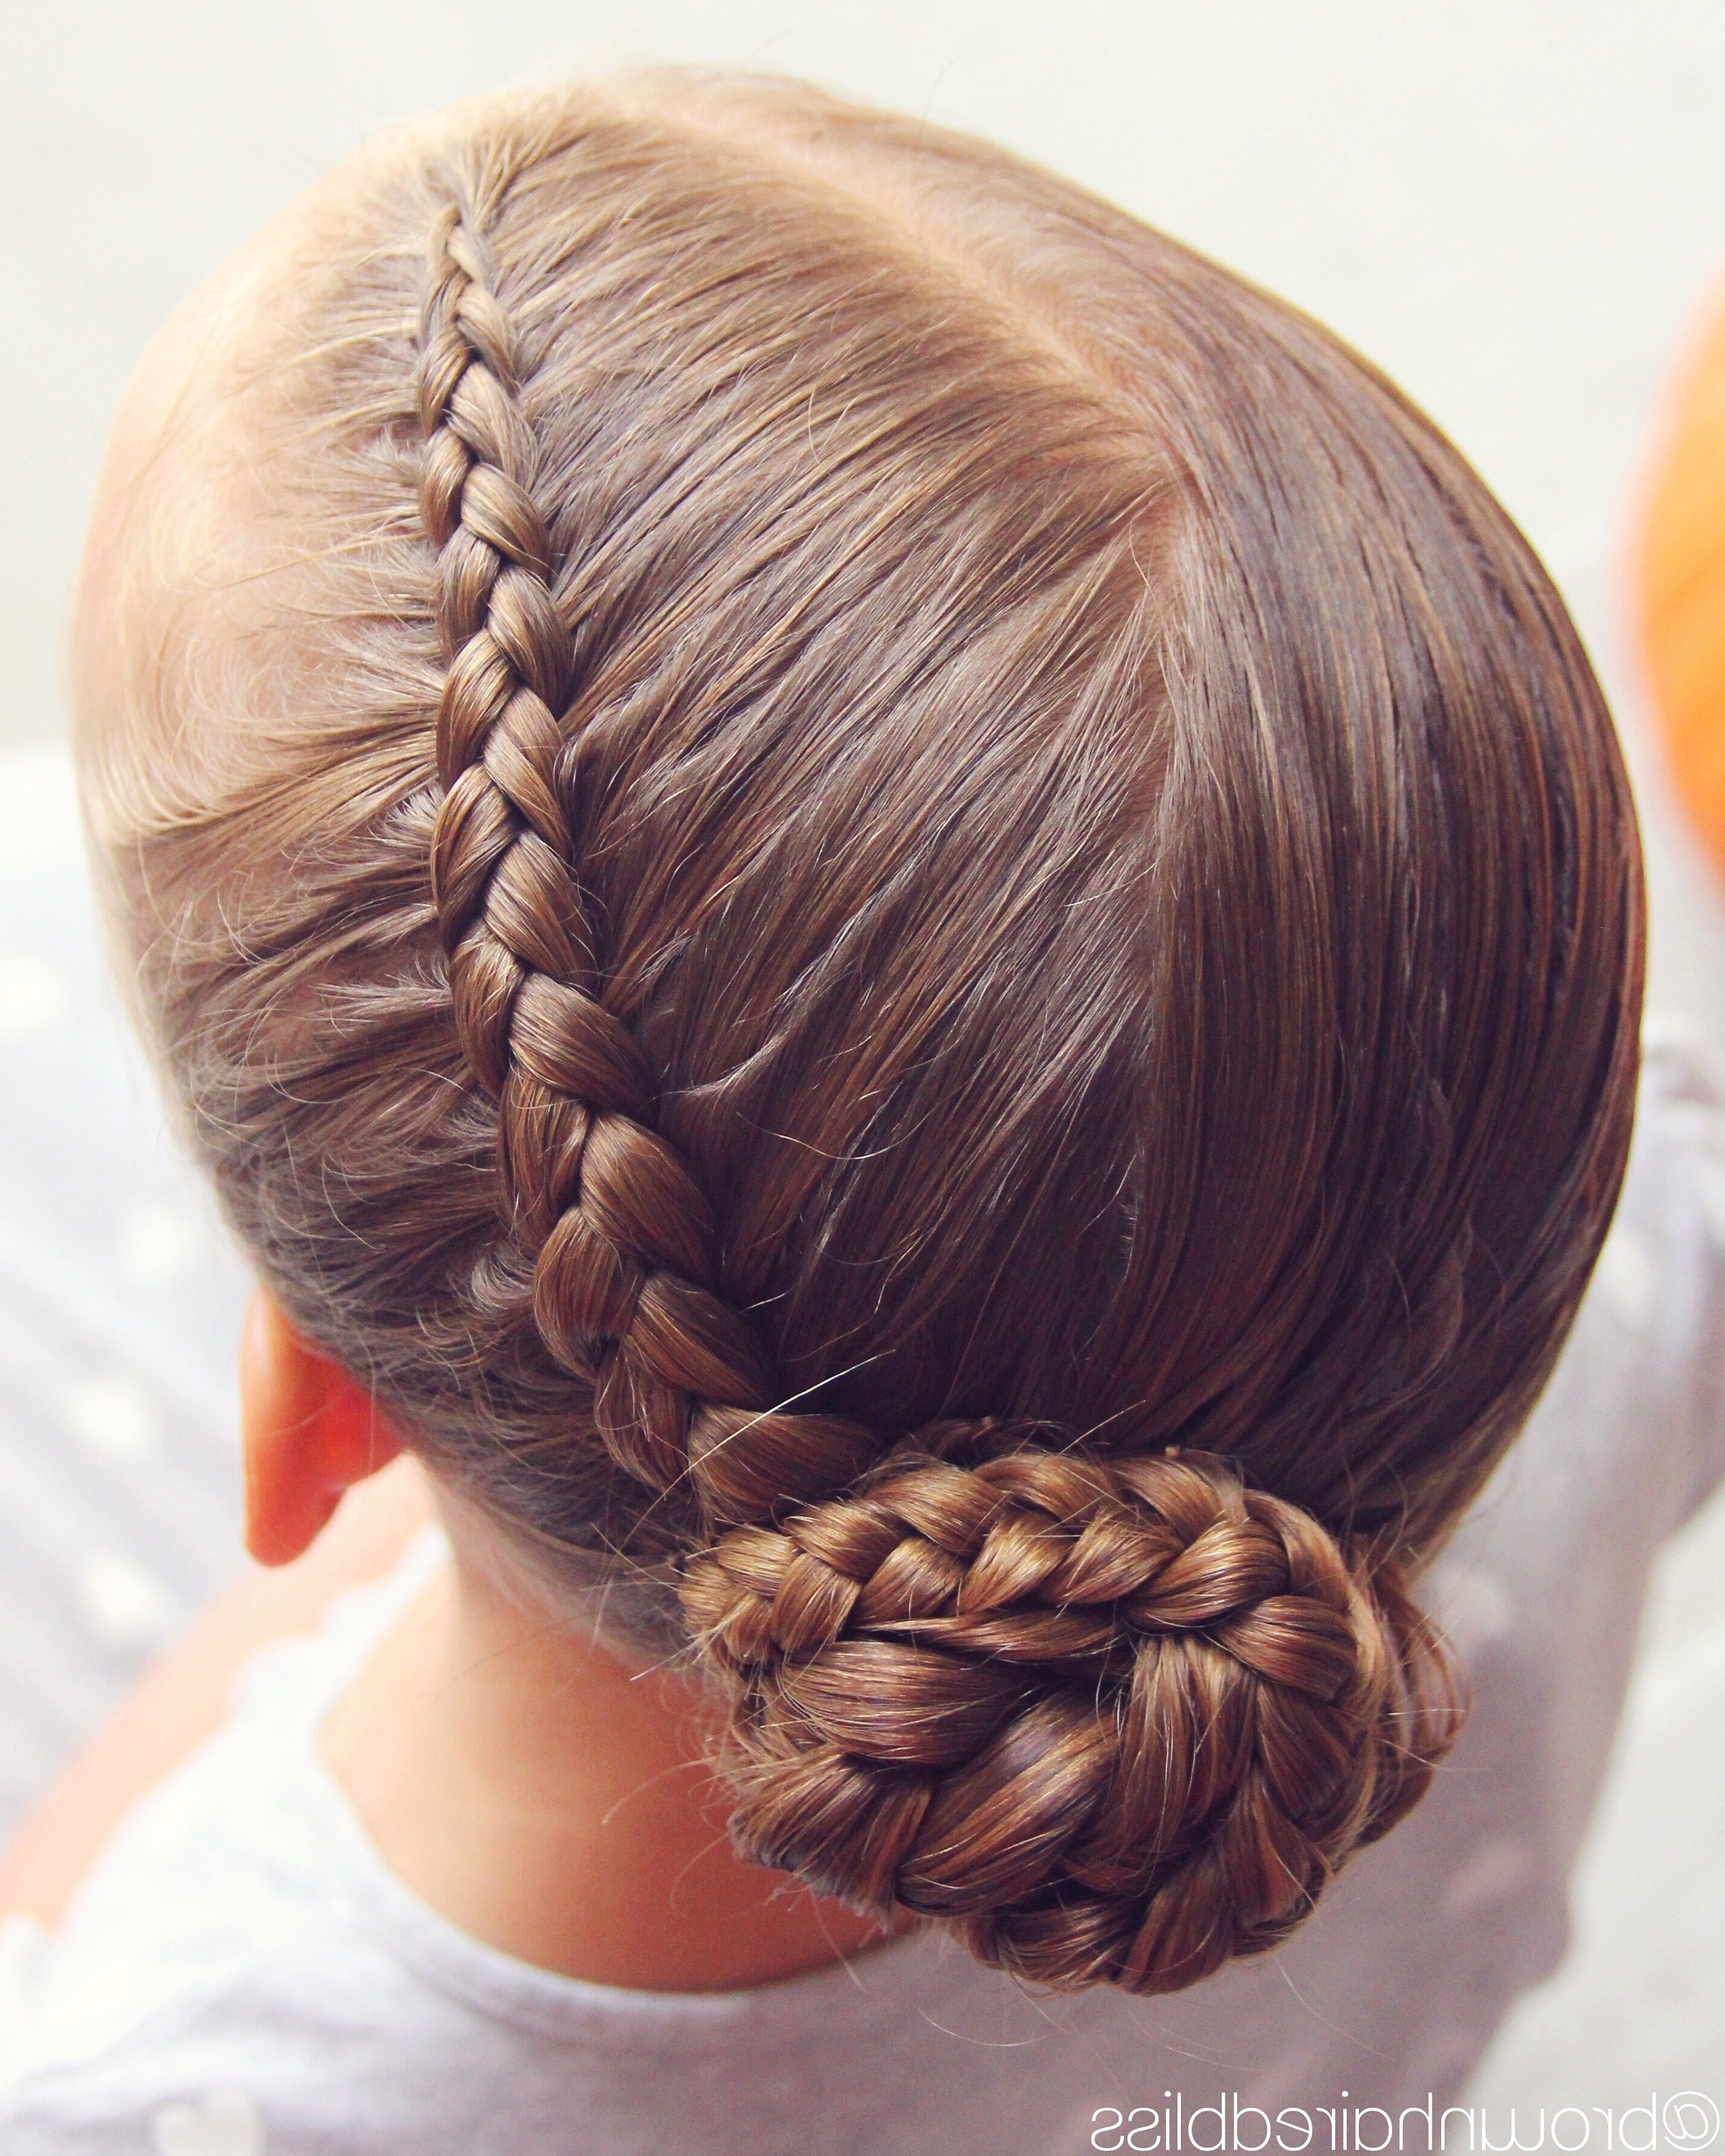 Diagonal Dutch Braid Into A Side Braided Bun – Pertaining To Recent French Braids Into Braided Buns (View 4 of 15)